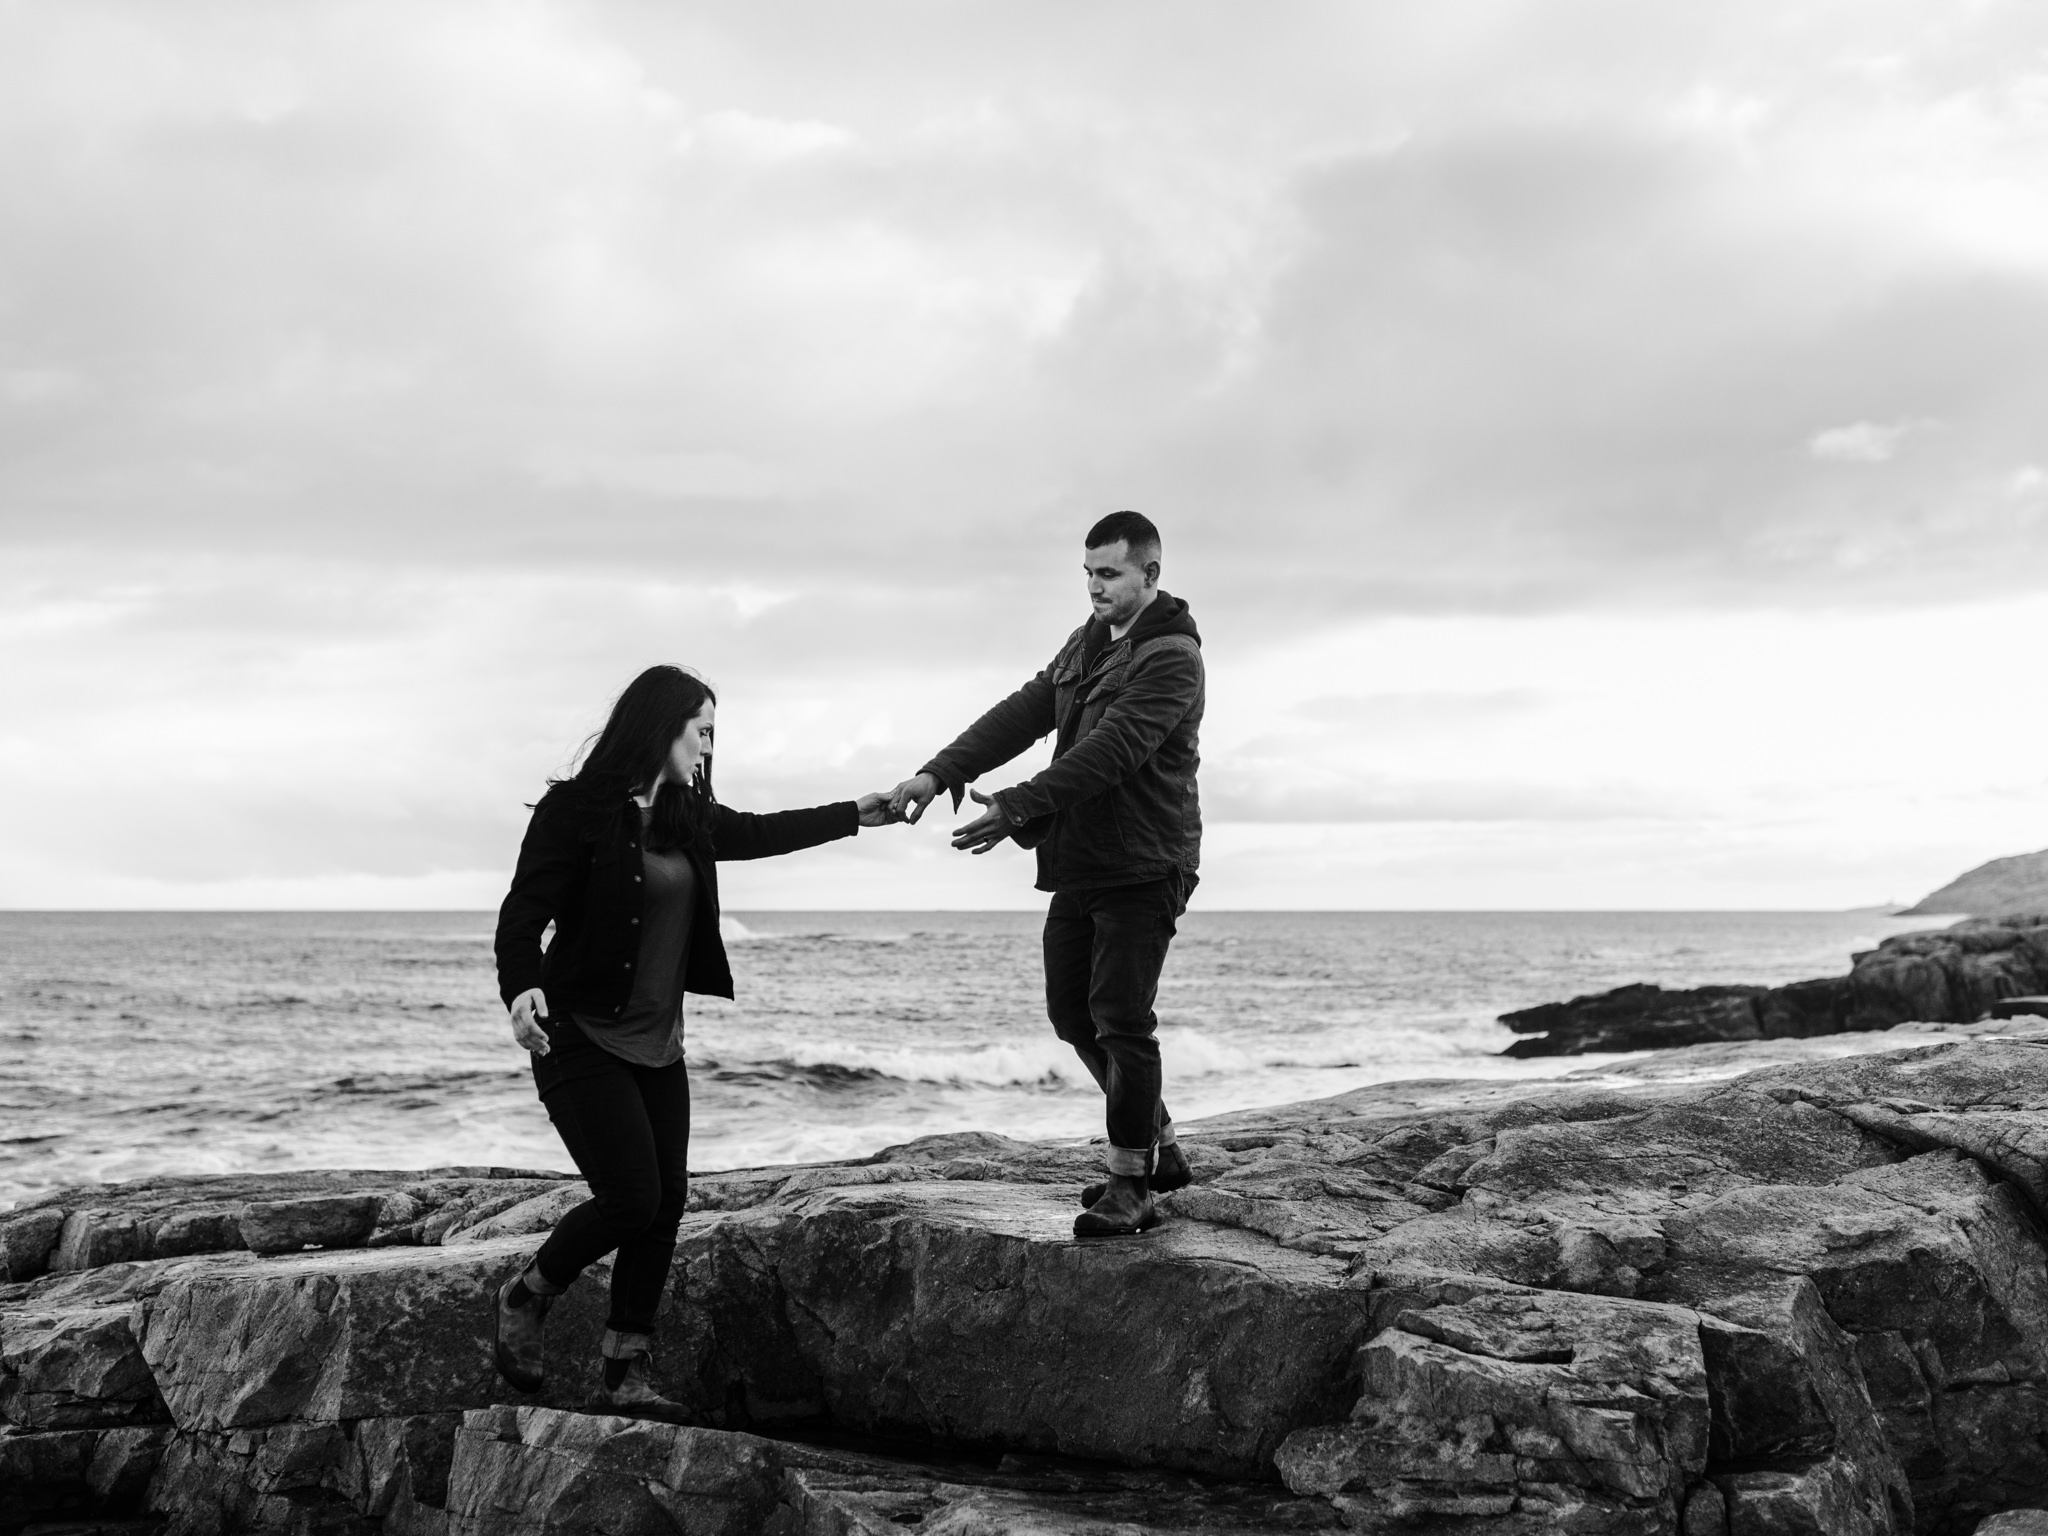 duncans-cove-halifax-engagement-photography-14.jpg